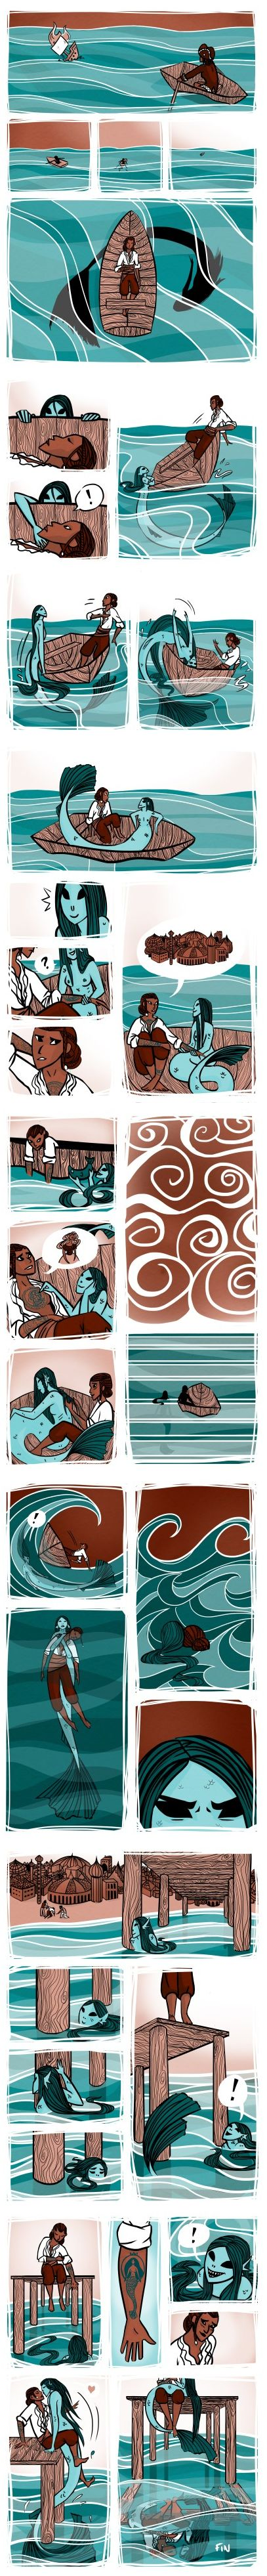 A little love story about mermaids and tattoos